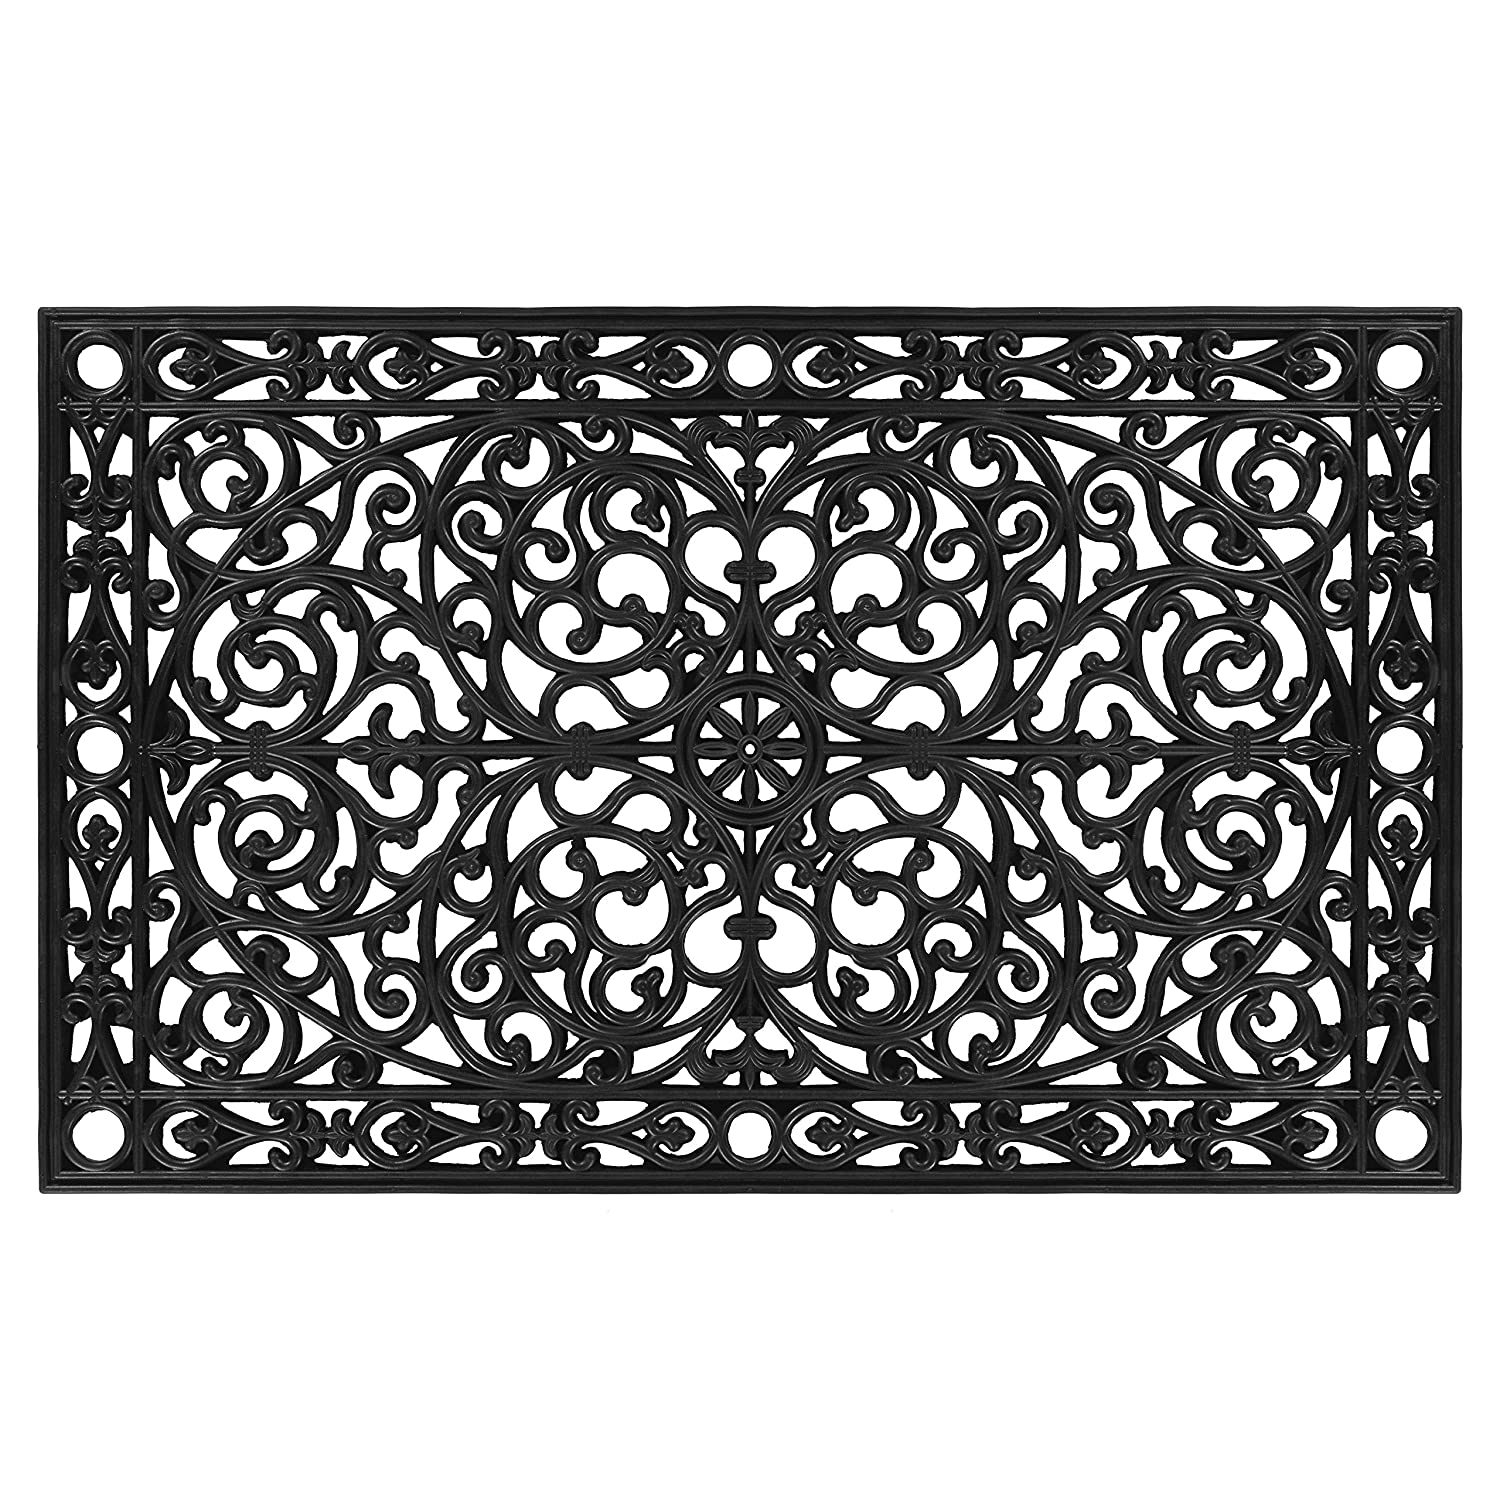 9. Home & More 900223048 Gatsby Doormat, 2'6